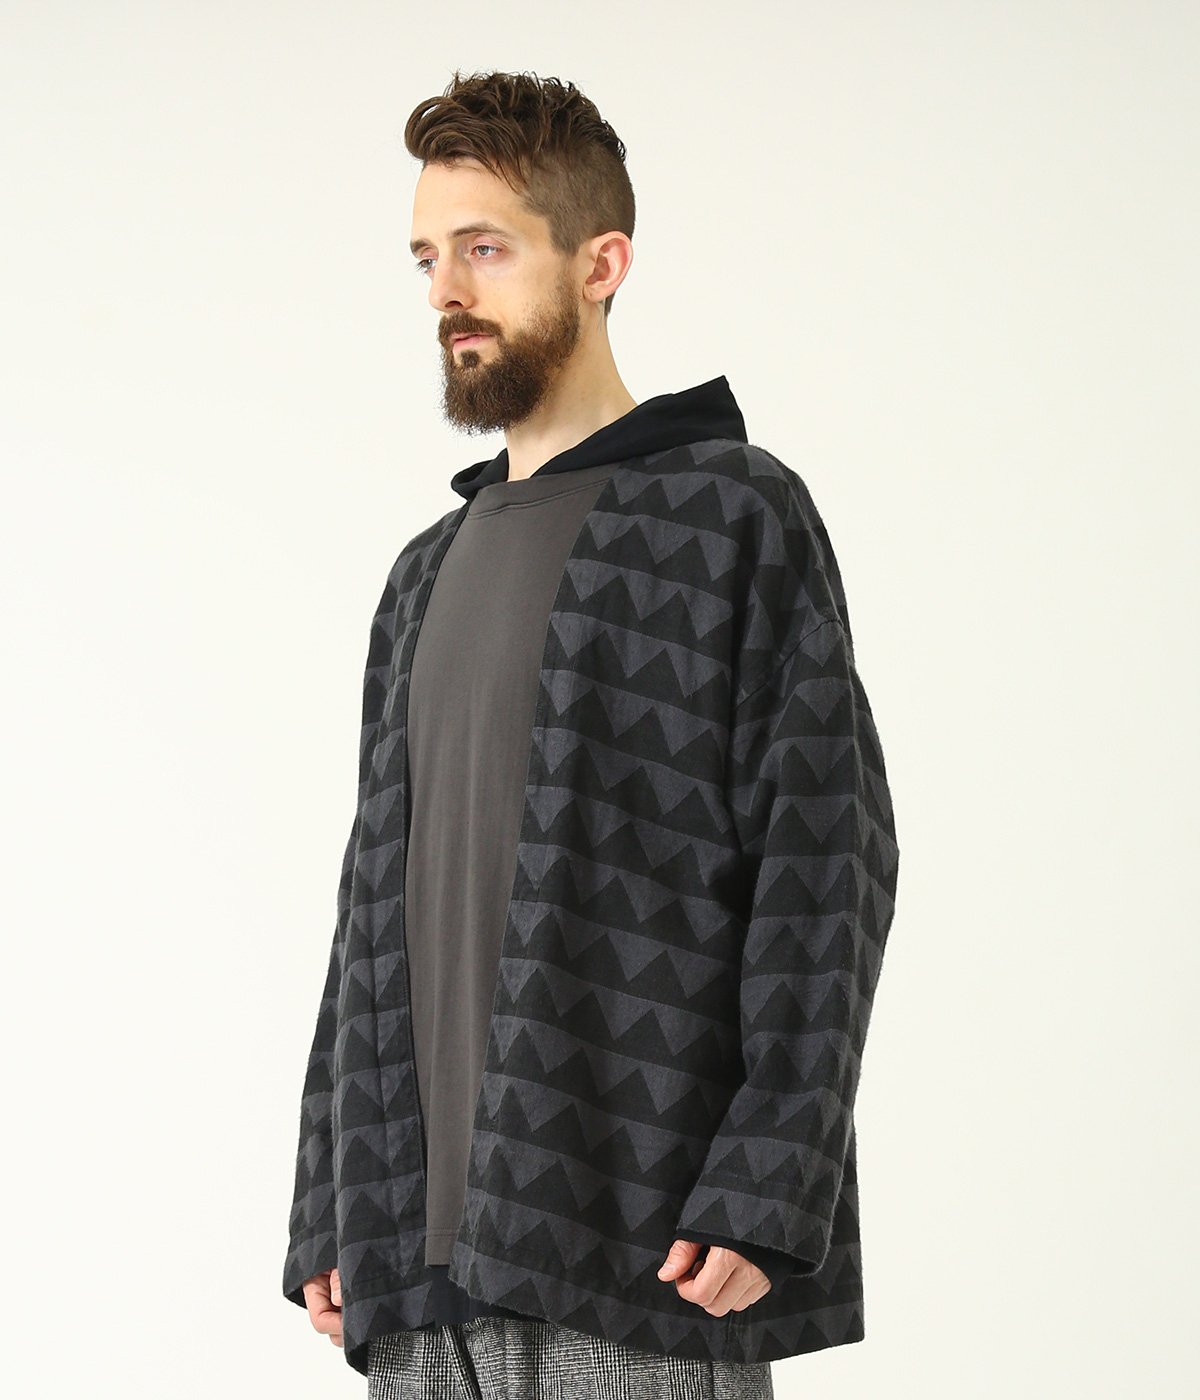 LINEN HERRINGBONE MOUNTAIN RANGE MOTIF NO COLLAR CARDIGAN